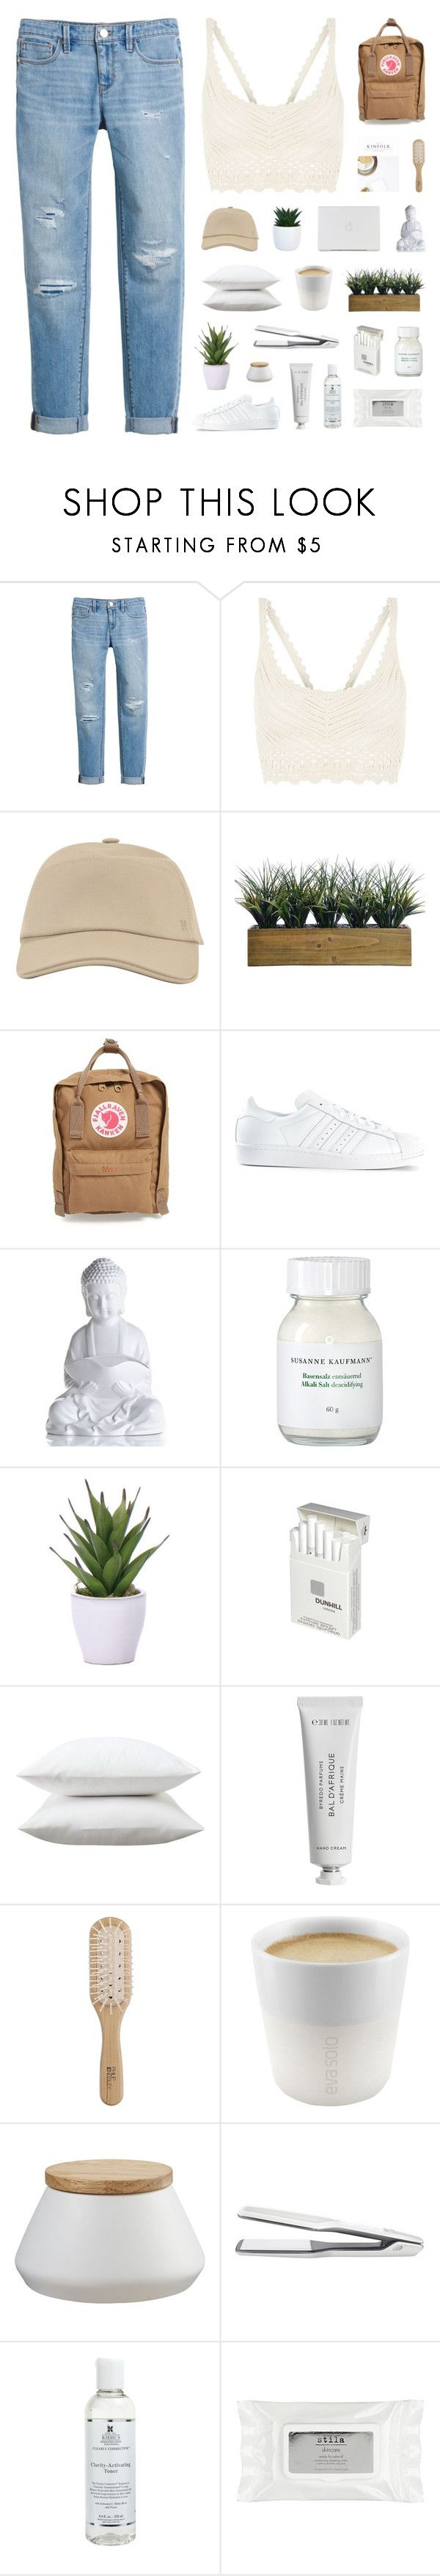 """""""All I want is you"""" by nauditaolivia ❤ liked on Polyvore featuring White House Black Market, Hermès, Laura Ashley, Fjällräven, adidas, Susanne Kaufmann, Lux-Art Silks, Dunhill, Fieldcrest and Byredo"""